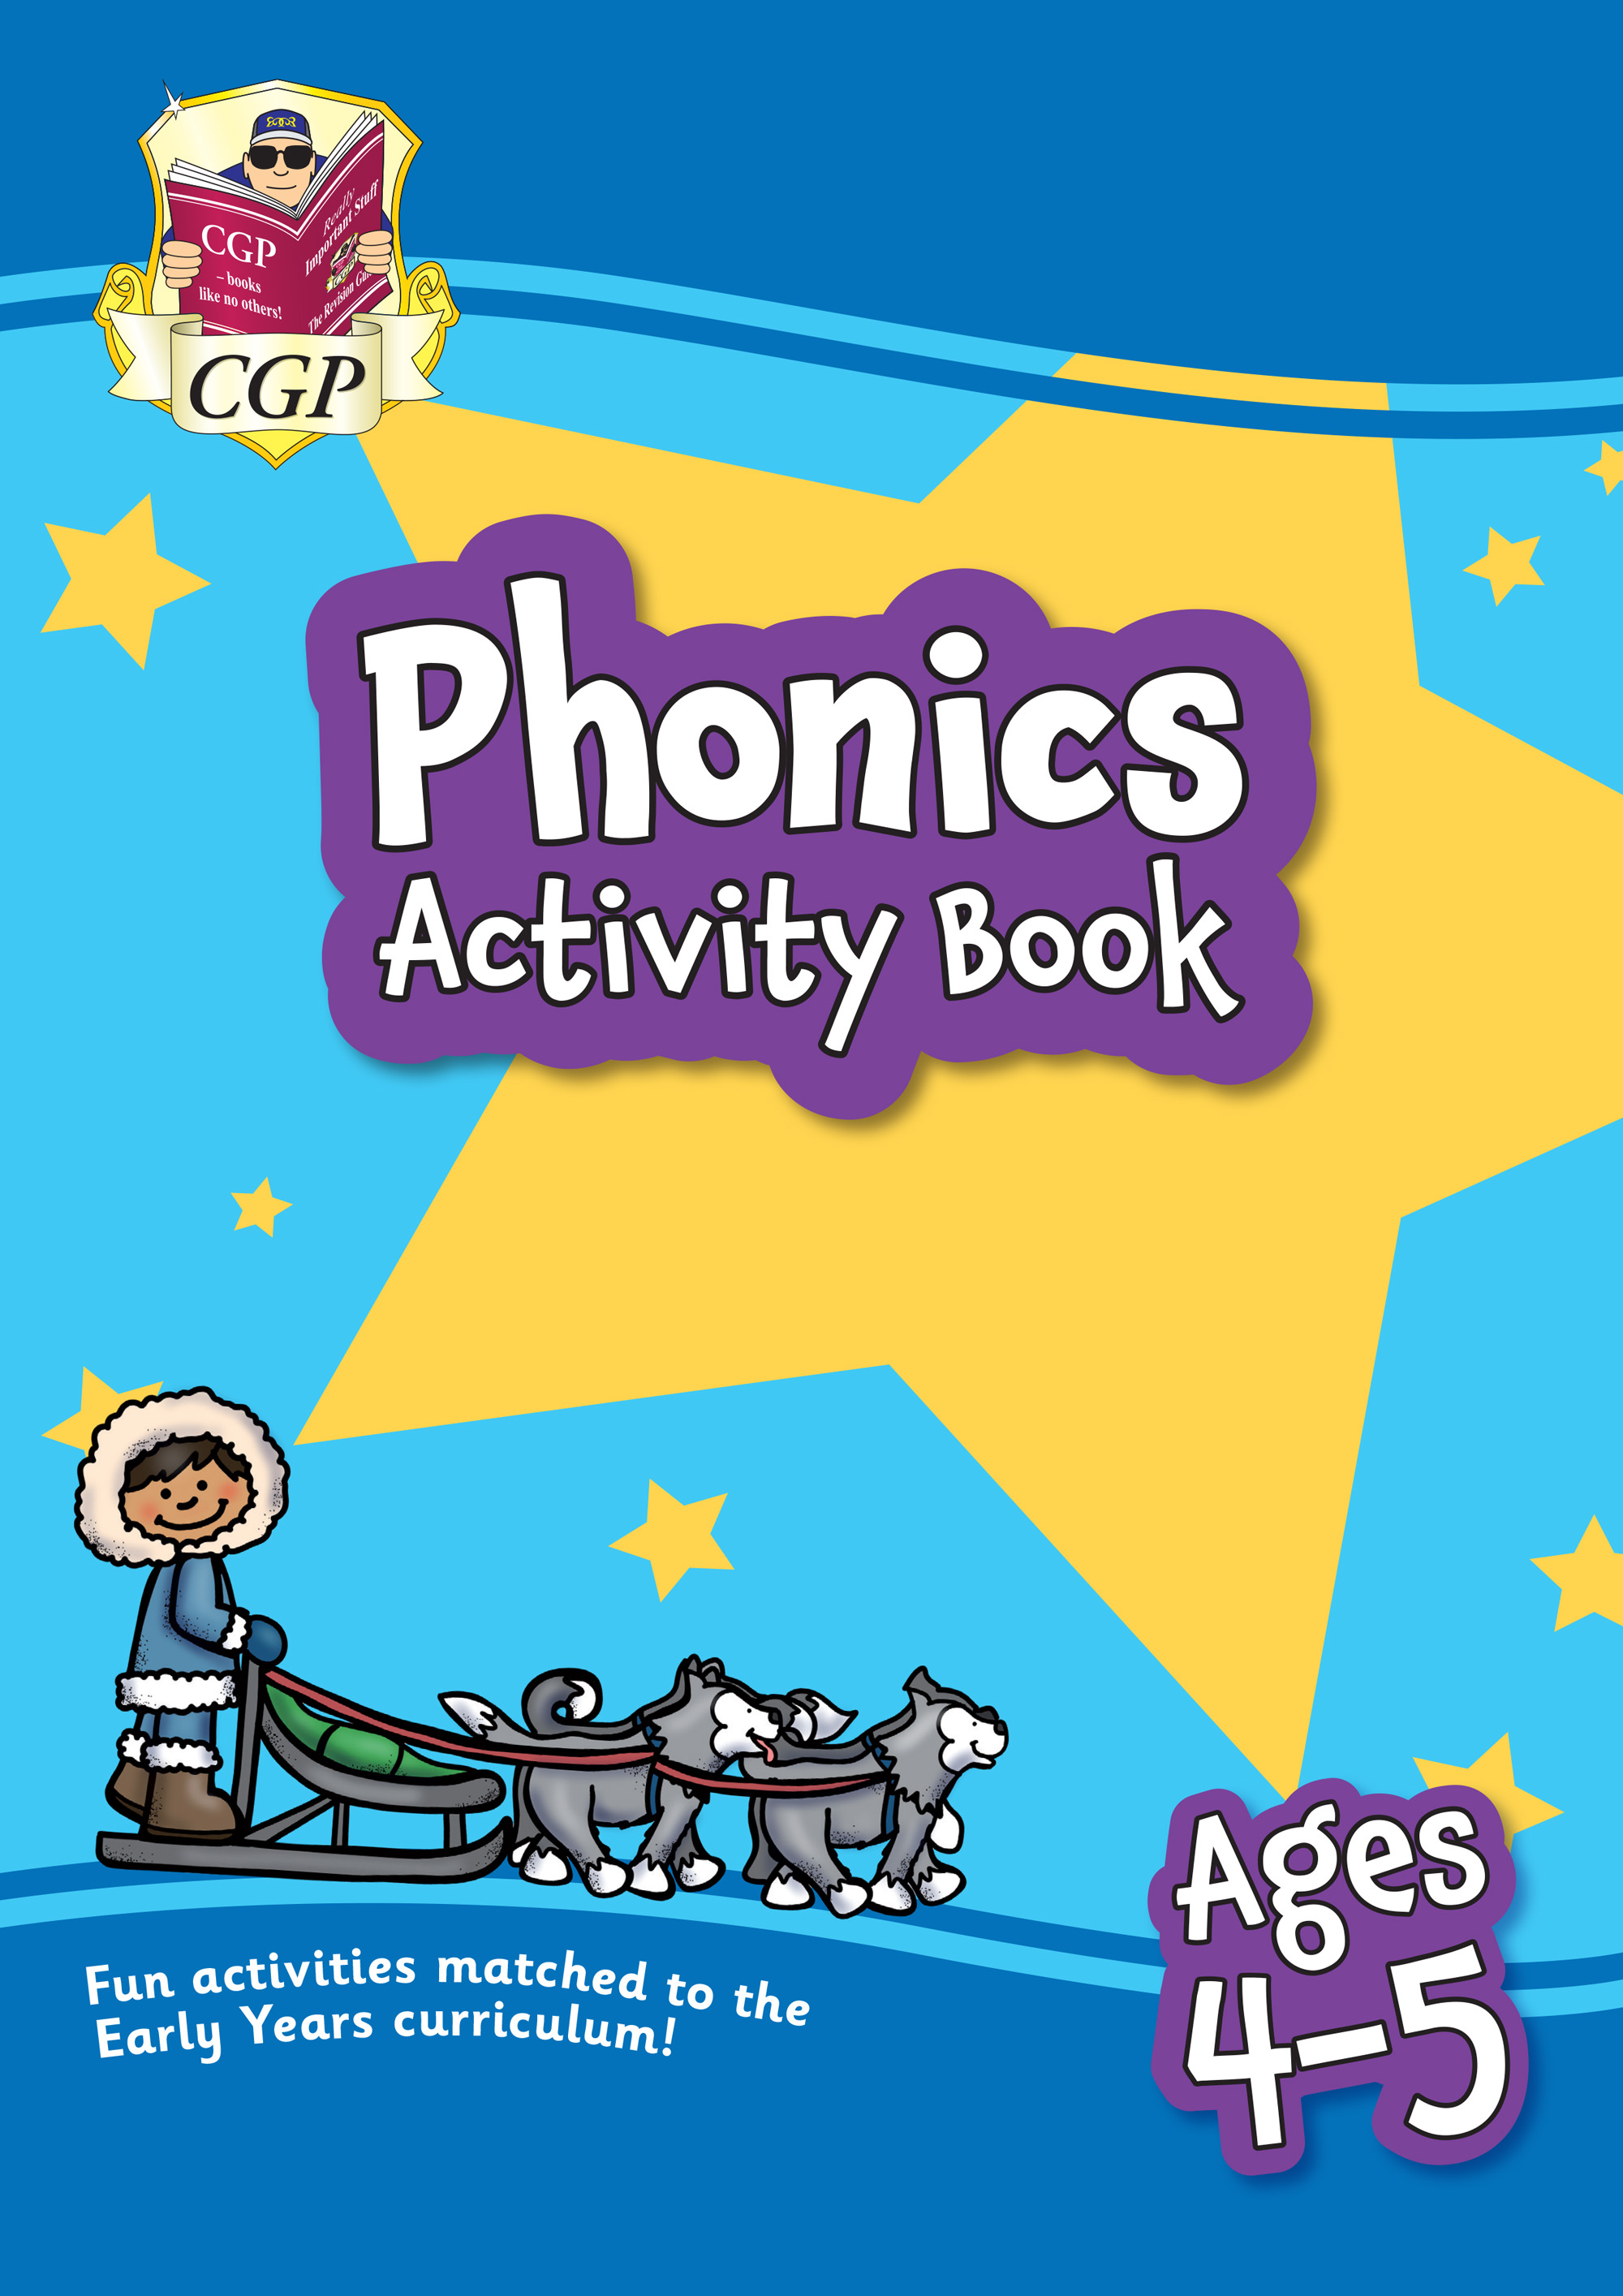 EPFROQ01 - New Phonics Activity Book for Ages 4-5: perfect for home learning